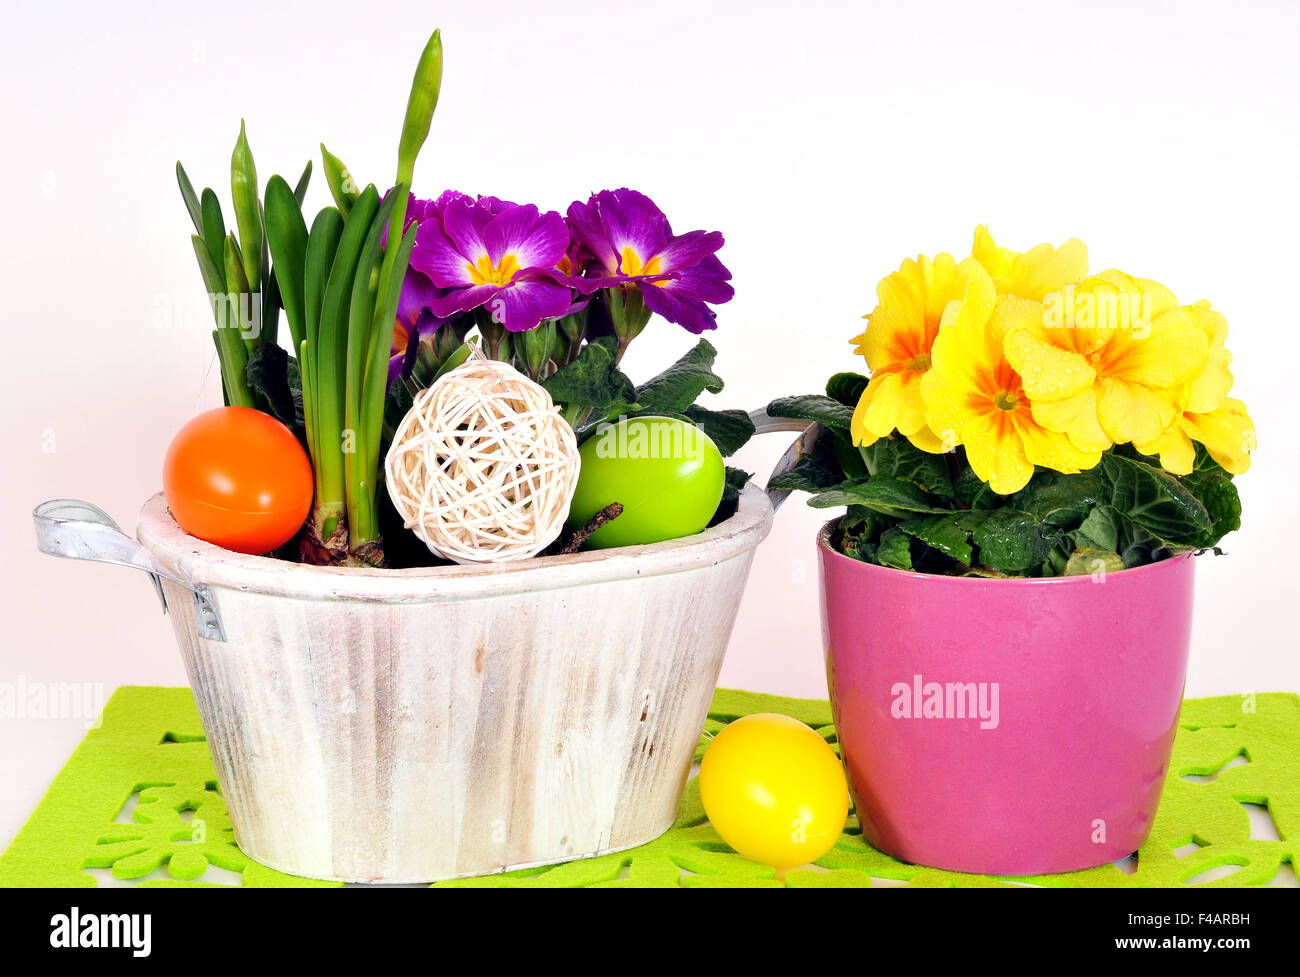 Easter Spring Flower Arrangements Stock Photo, Royalty Free Image ...